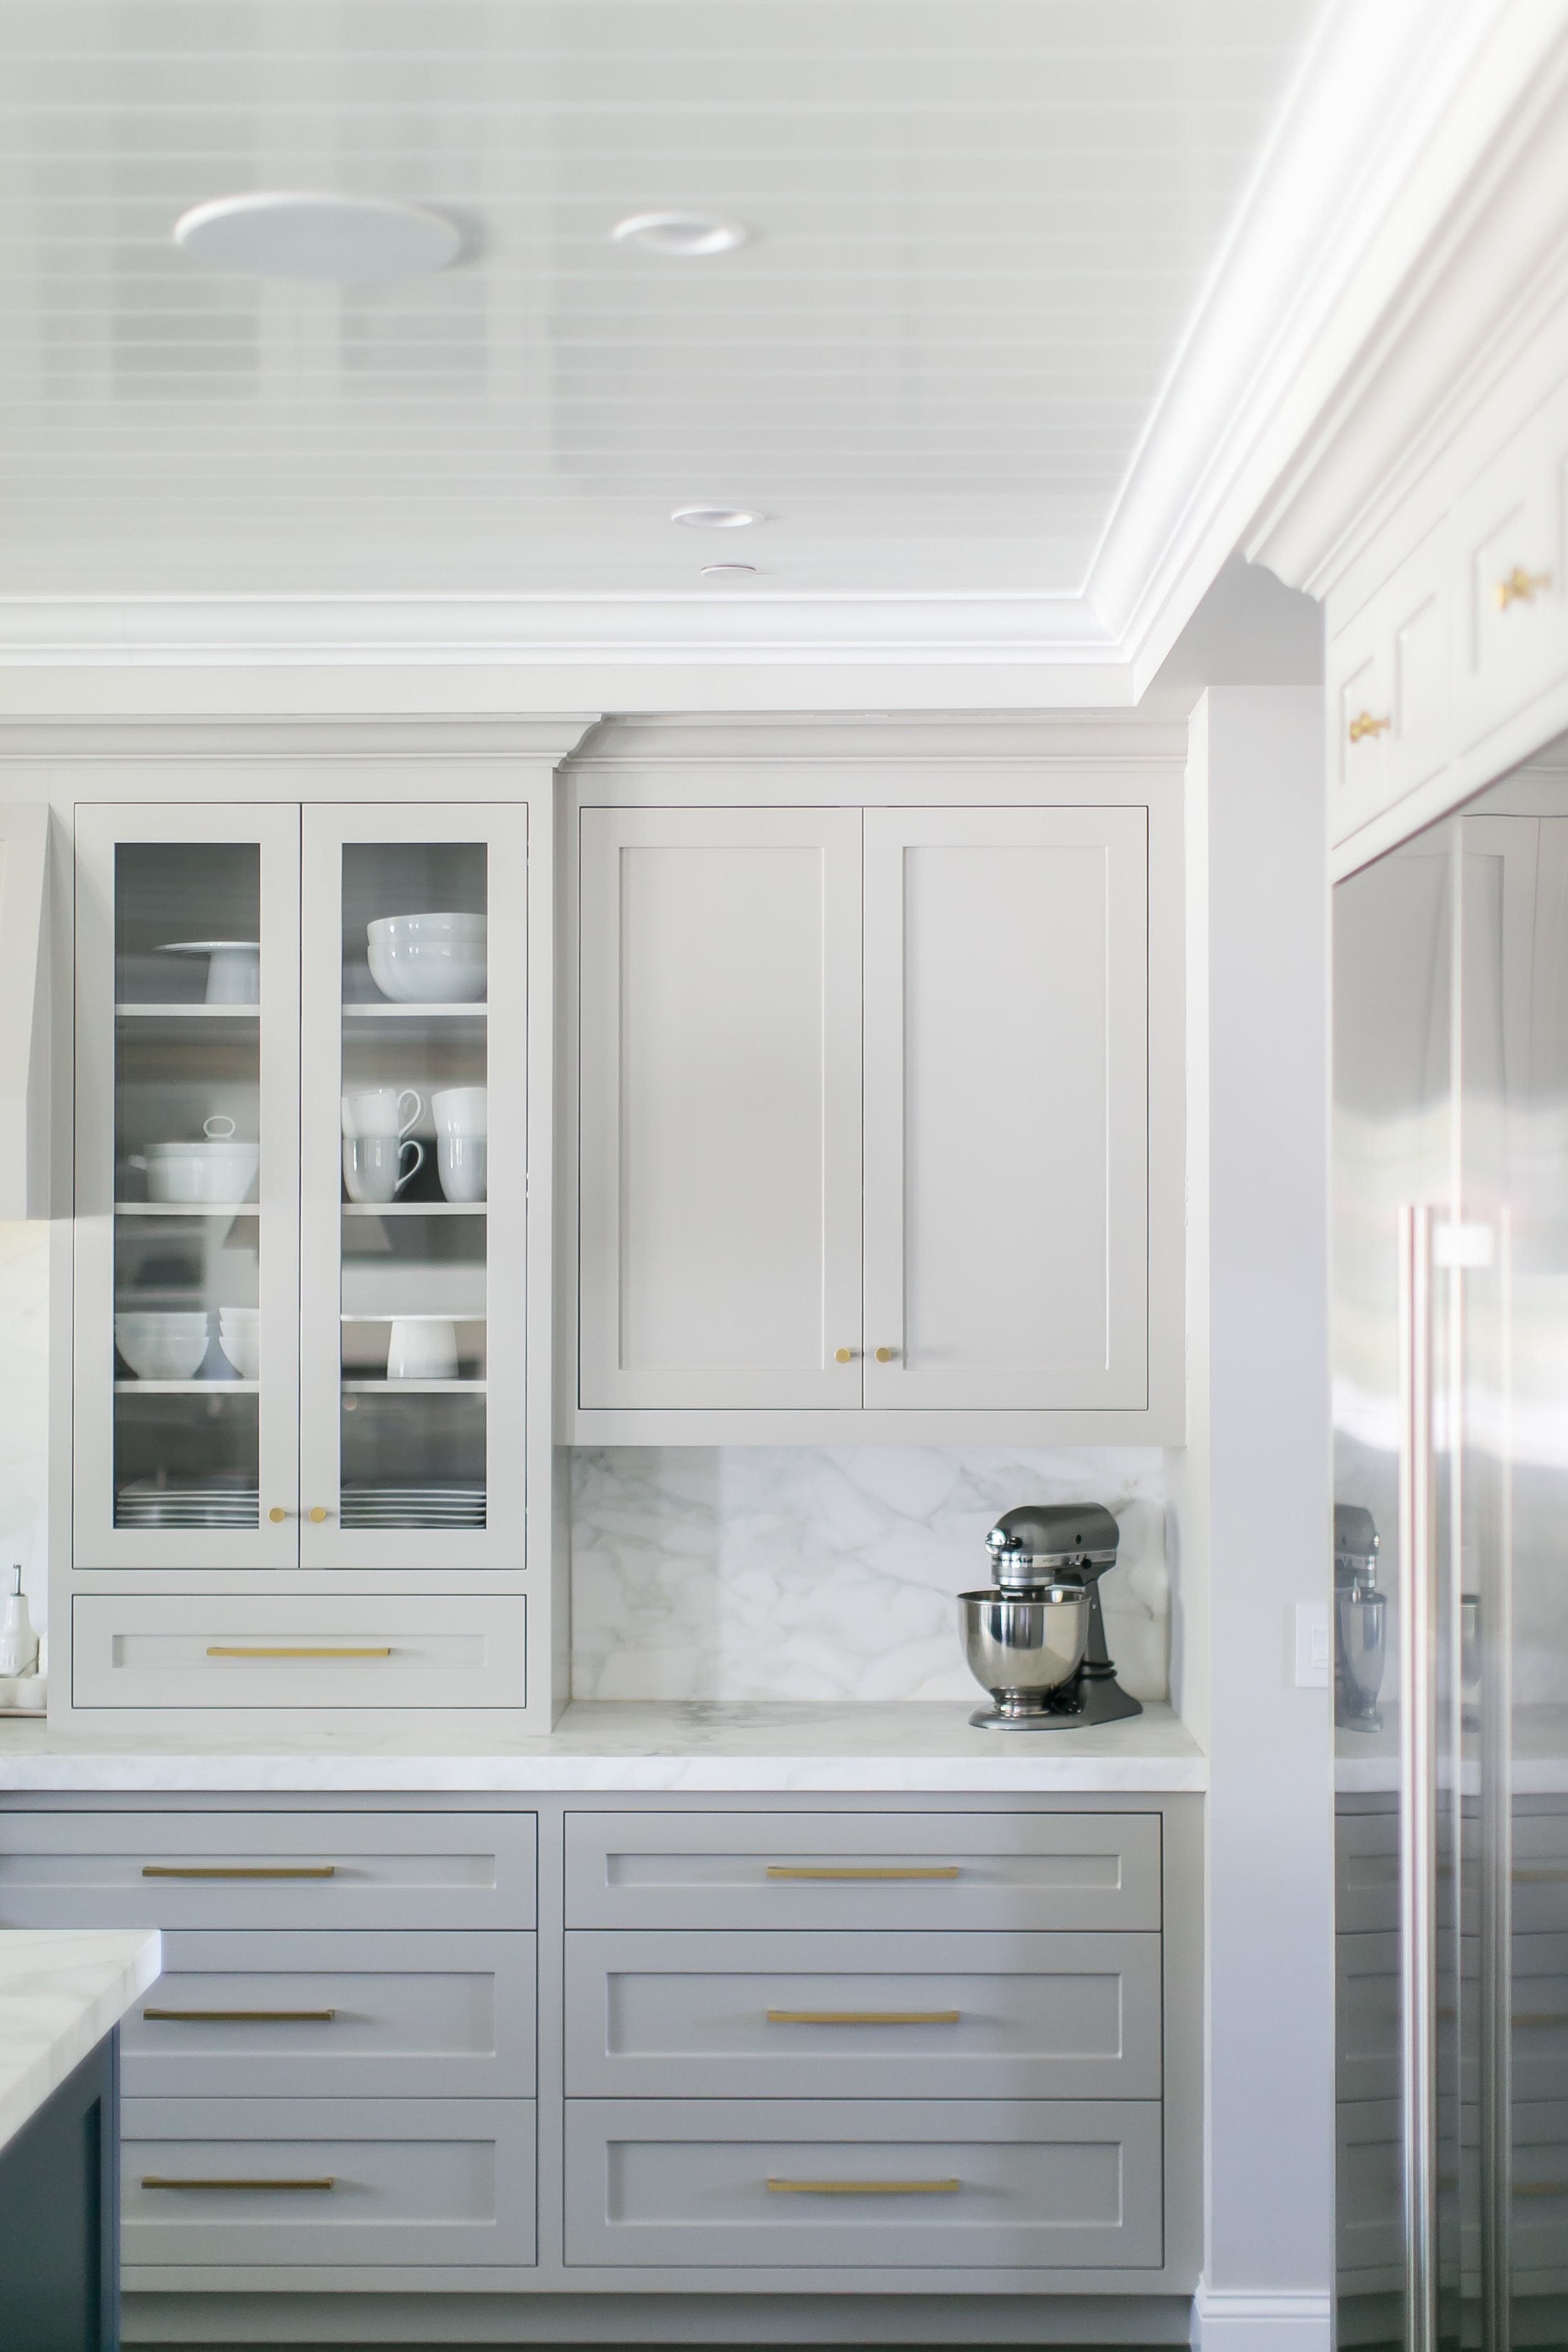 Kitchen Cabinets With Black Trim Gorgeous Light Grey Cabinets Marbled Countertops